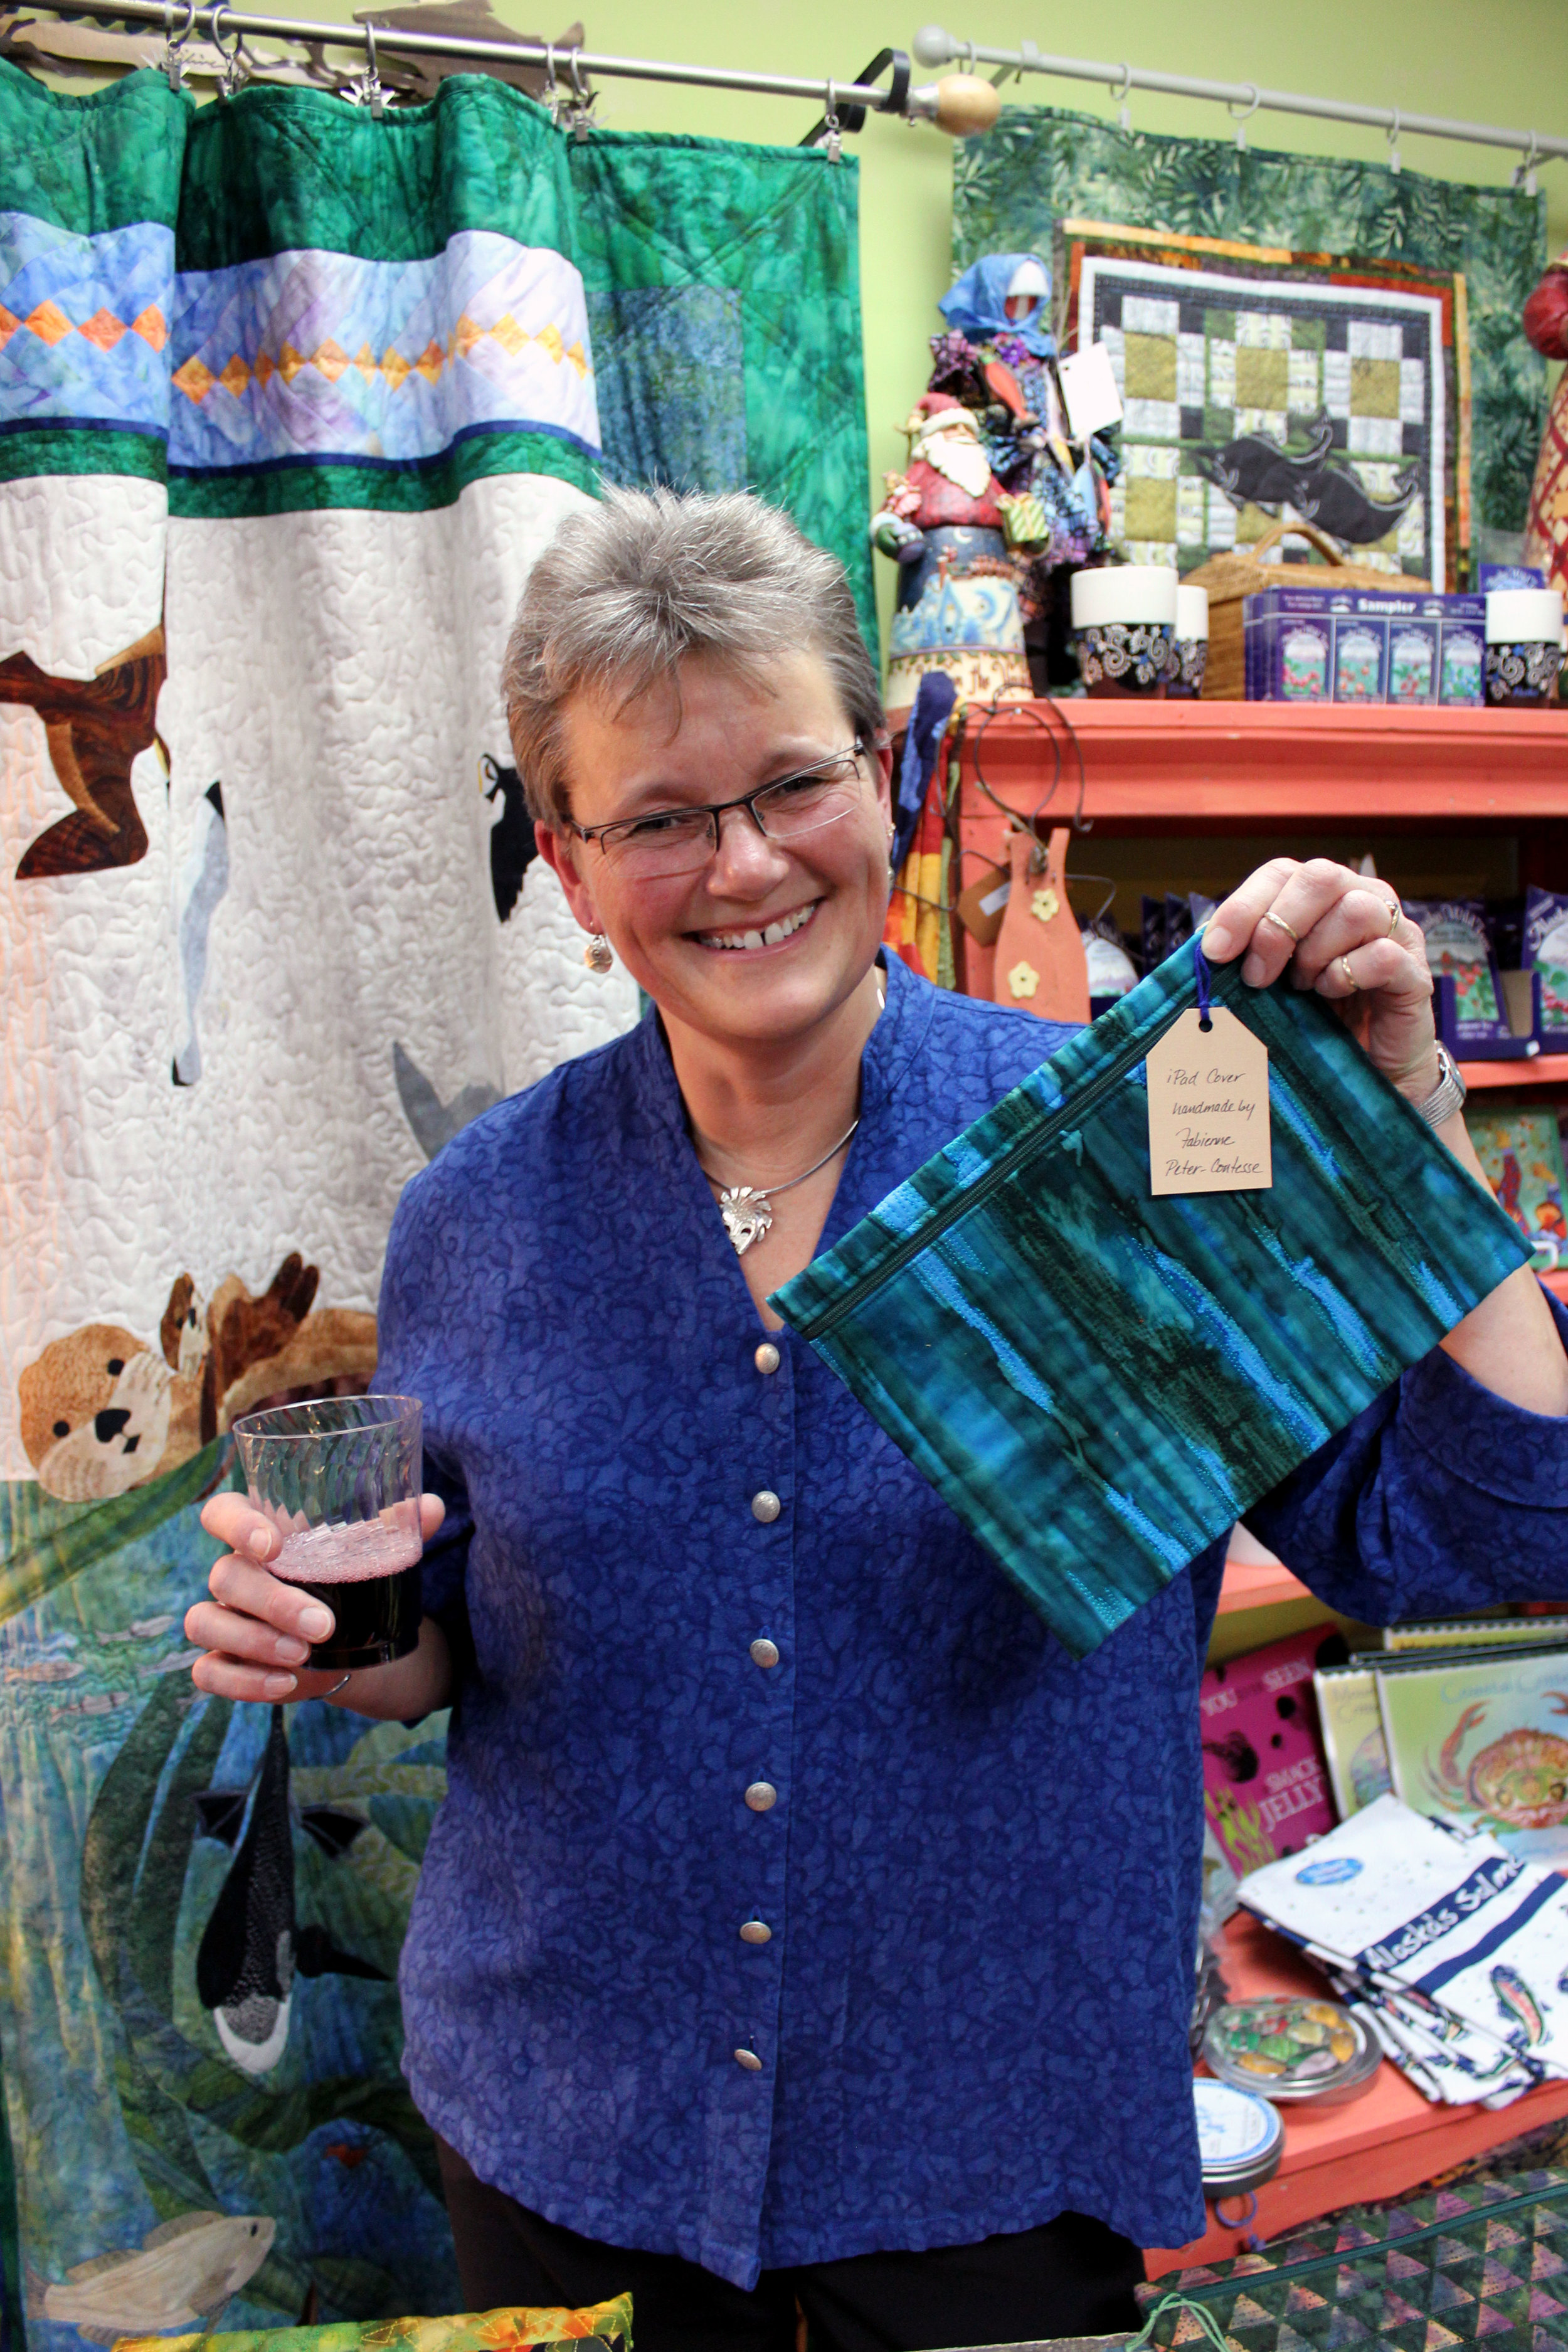 The artist and one of her hand-stitched iPad cases.